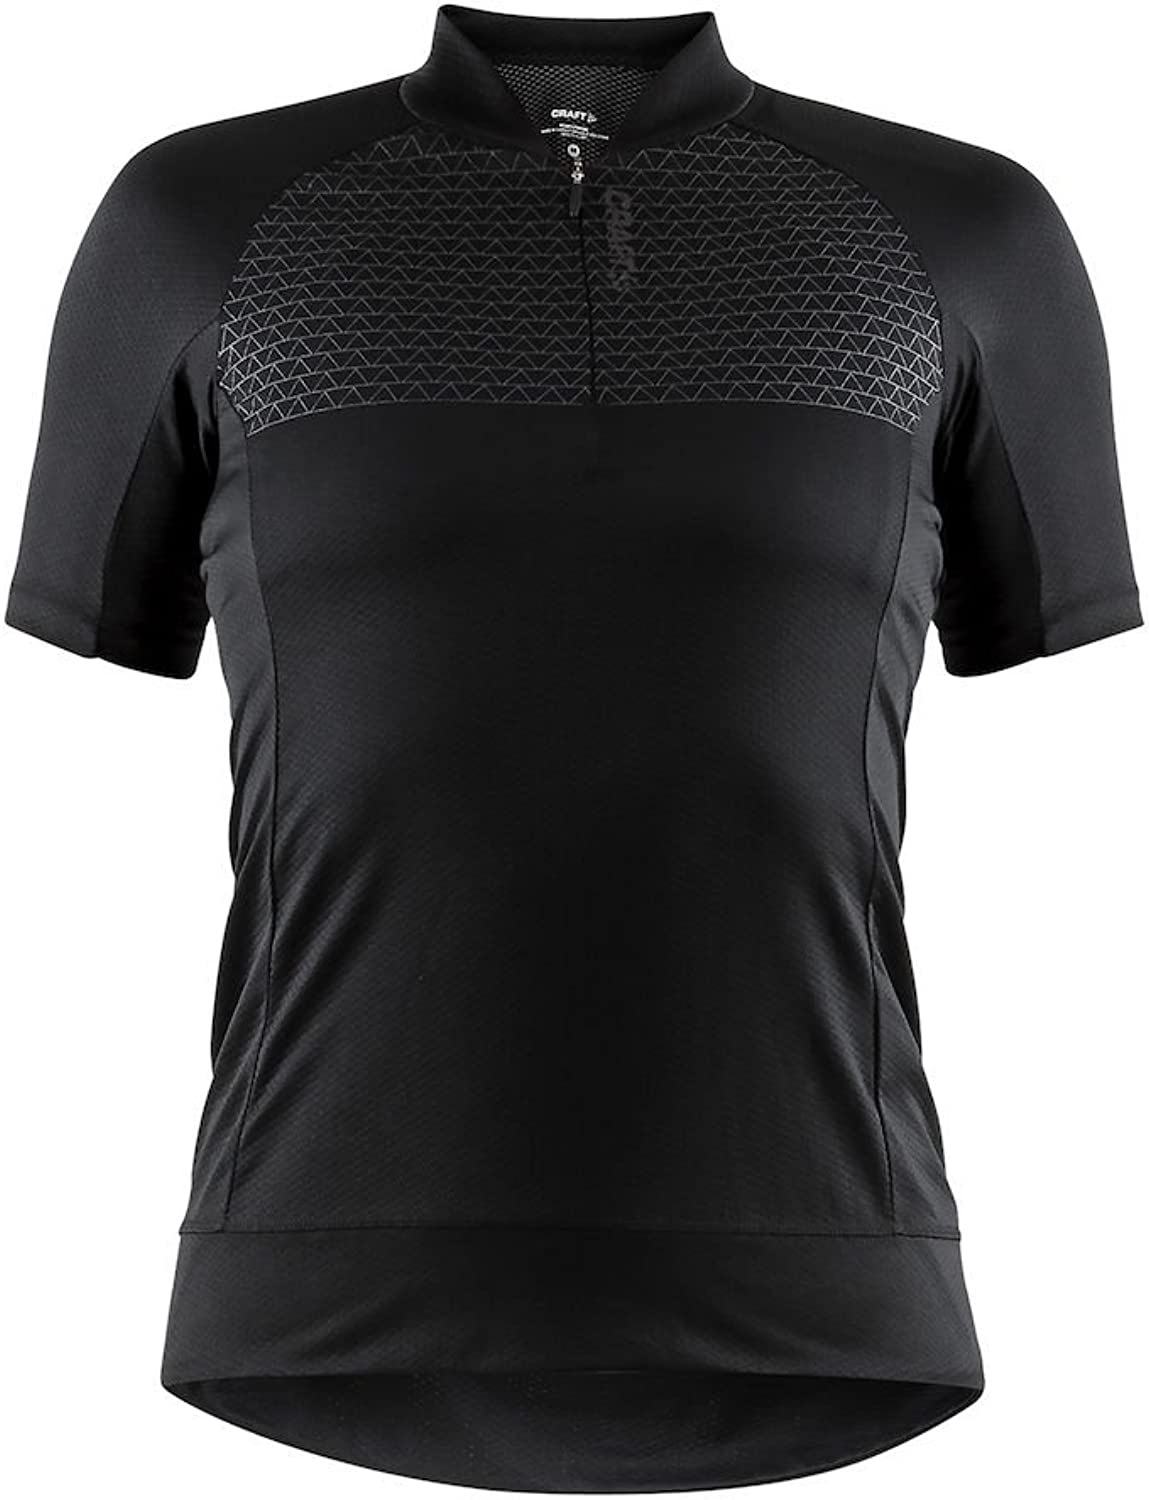 Craft Sportswear Women's Rise Bike and Cycling Training 1 4 Zip Short Sleeve Jersey  Predective Riding Compression Cooling